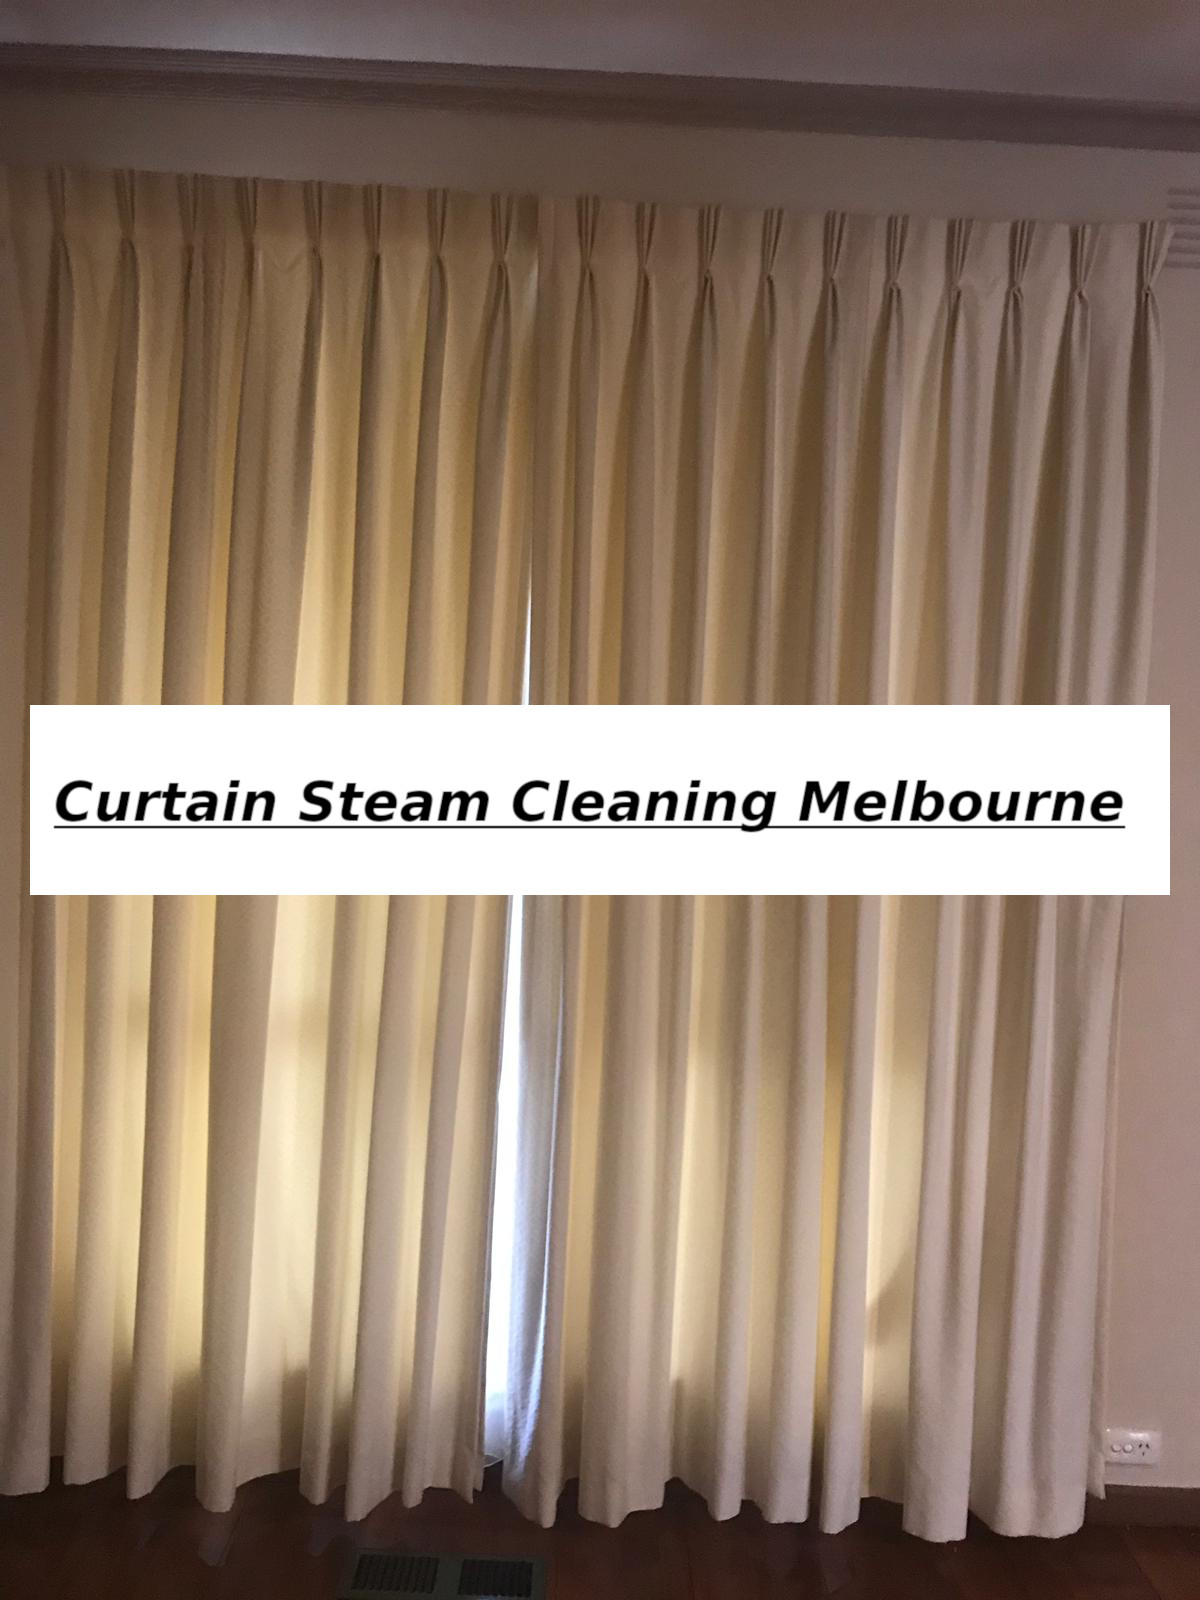 curtain steam cleaning service melbourne